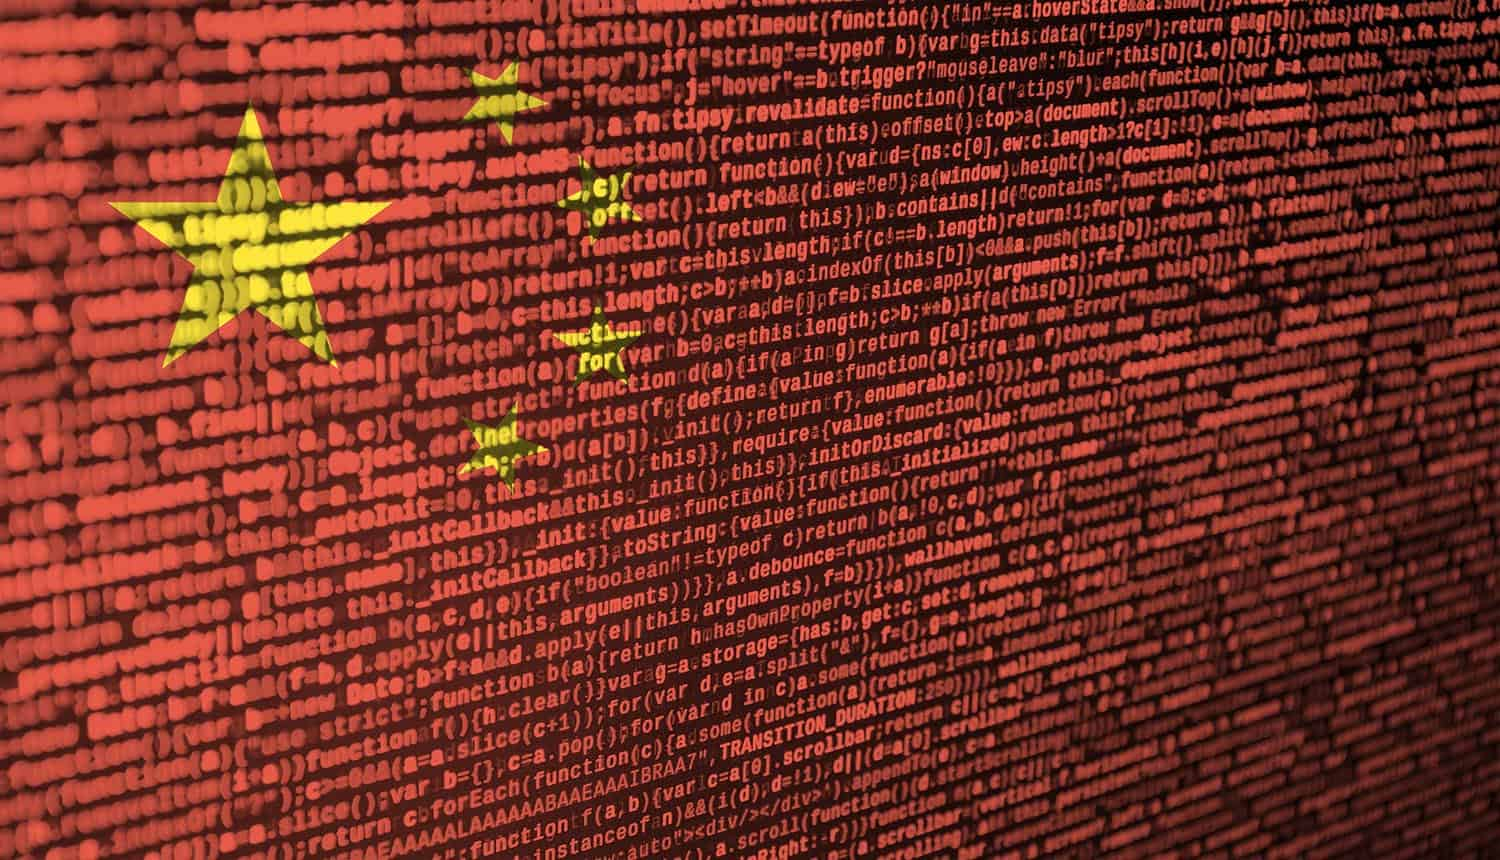 China flag is depicted on the screen with the program code showing use of Taidoor malware attack for cyber espionage